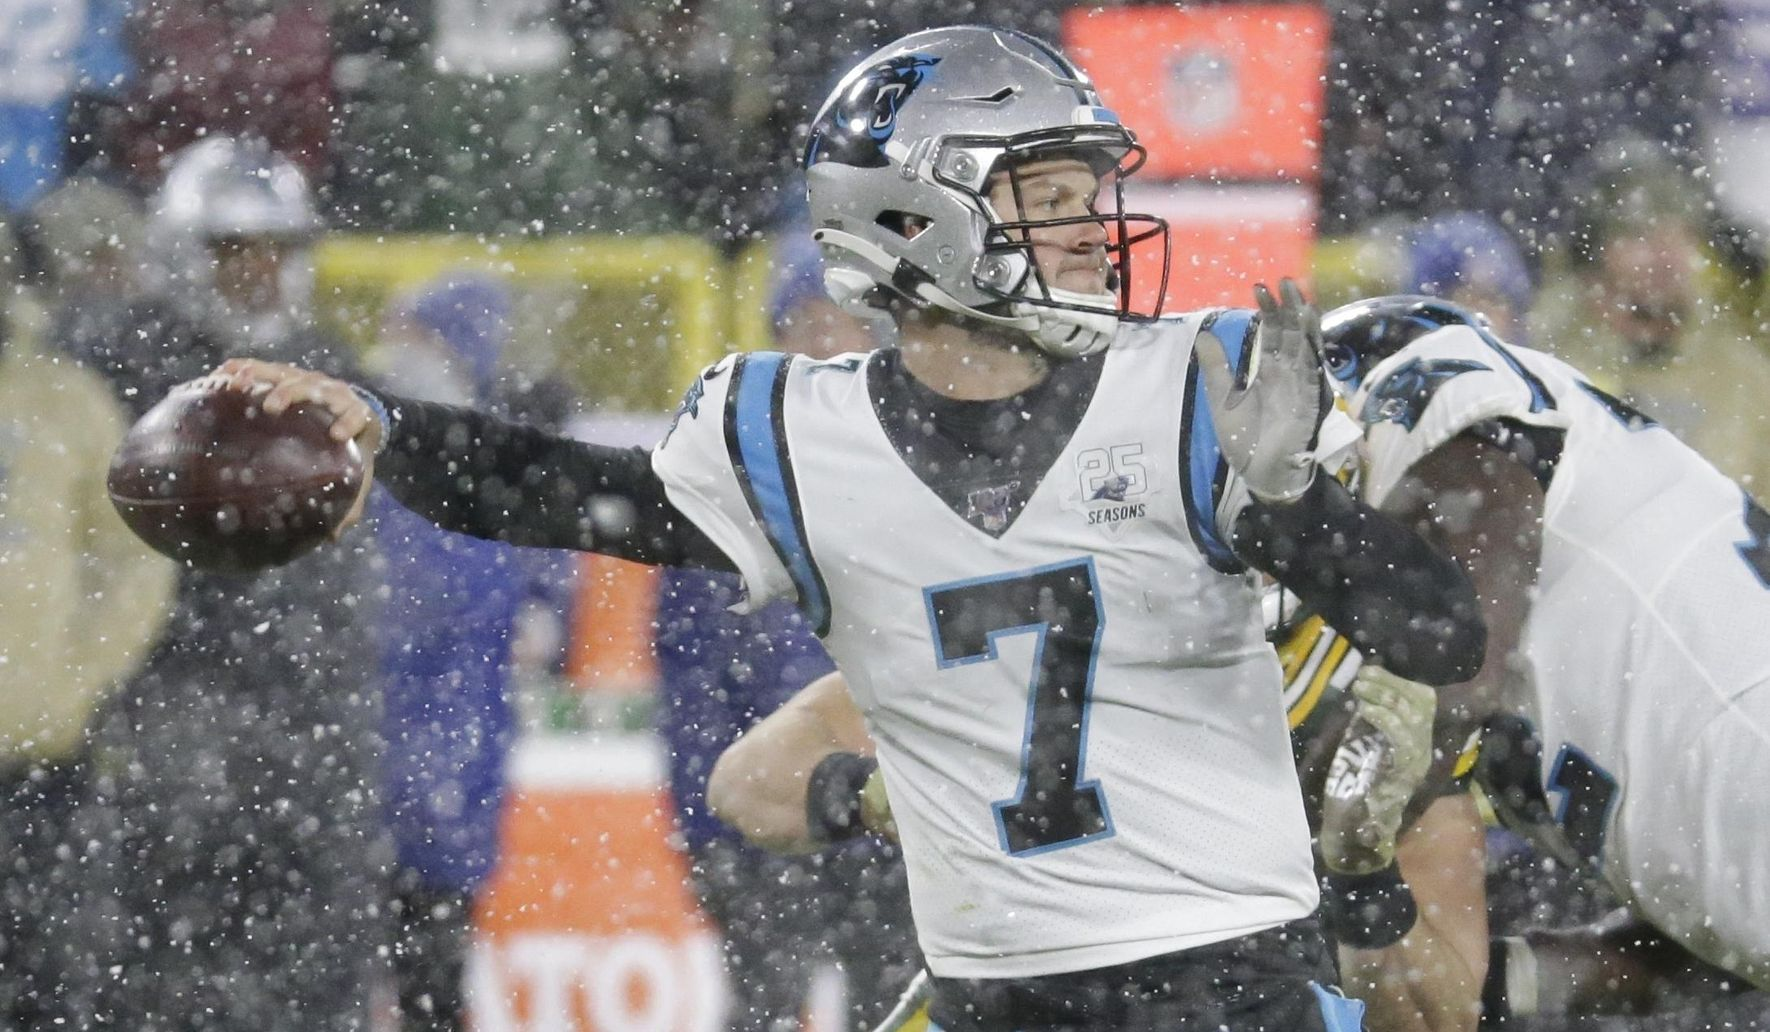 Panthers_packers_football_56630_c0-91-2180-1362_s1770x1032